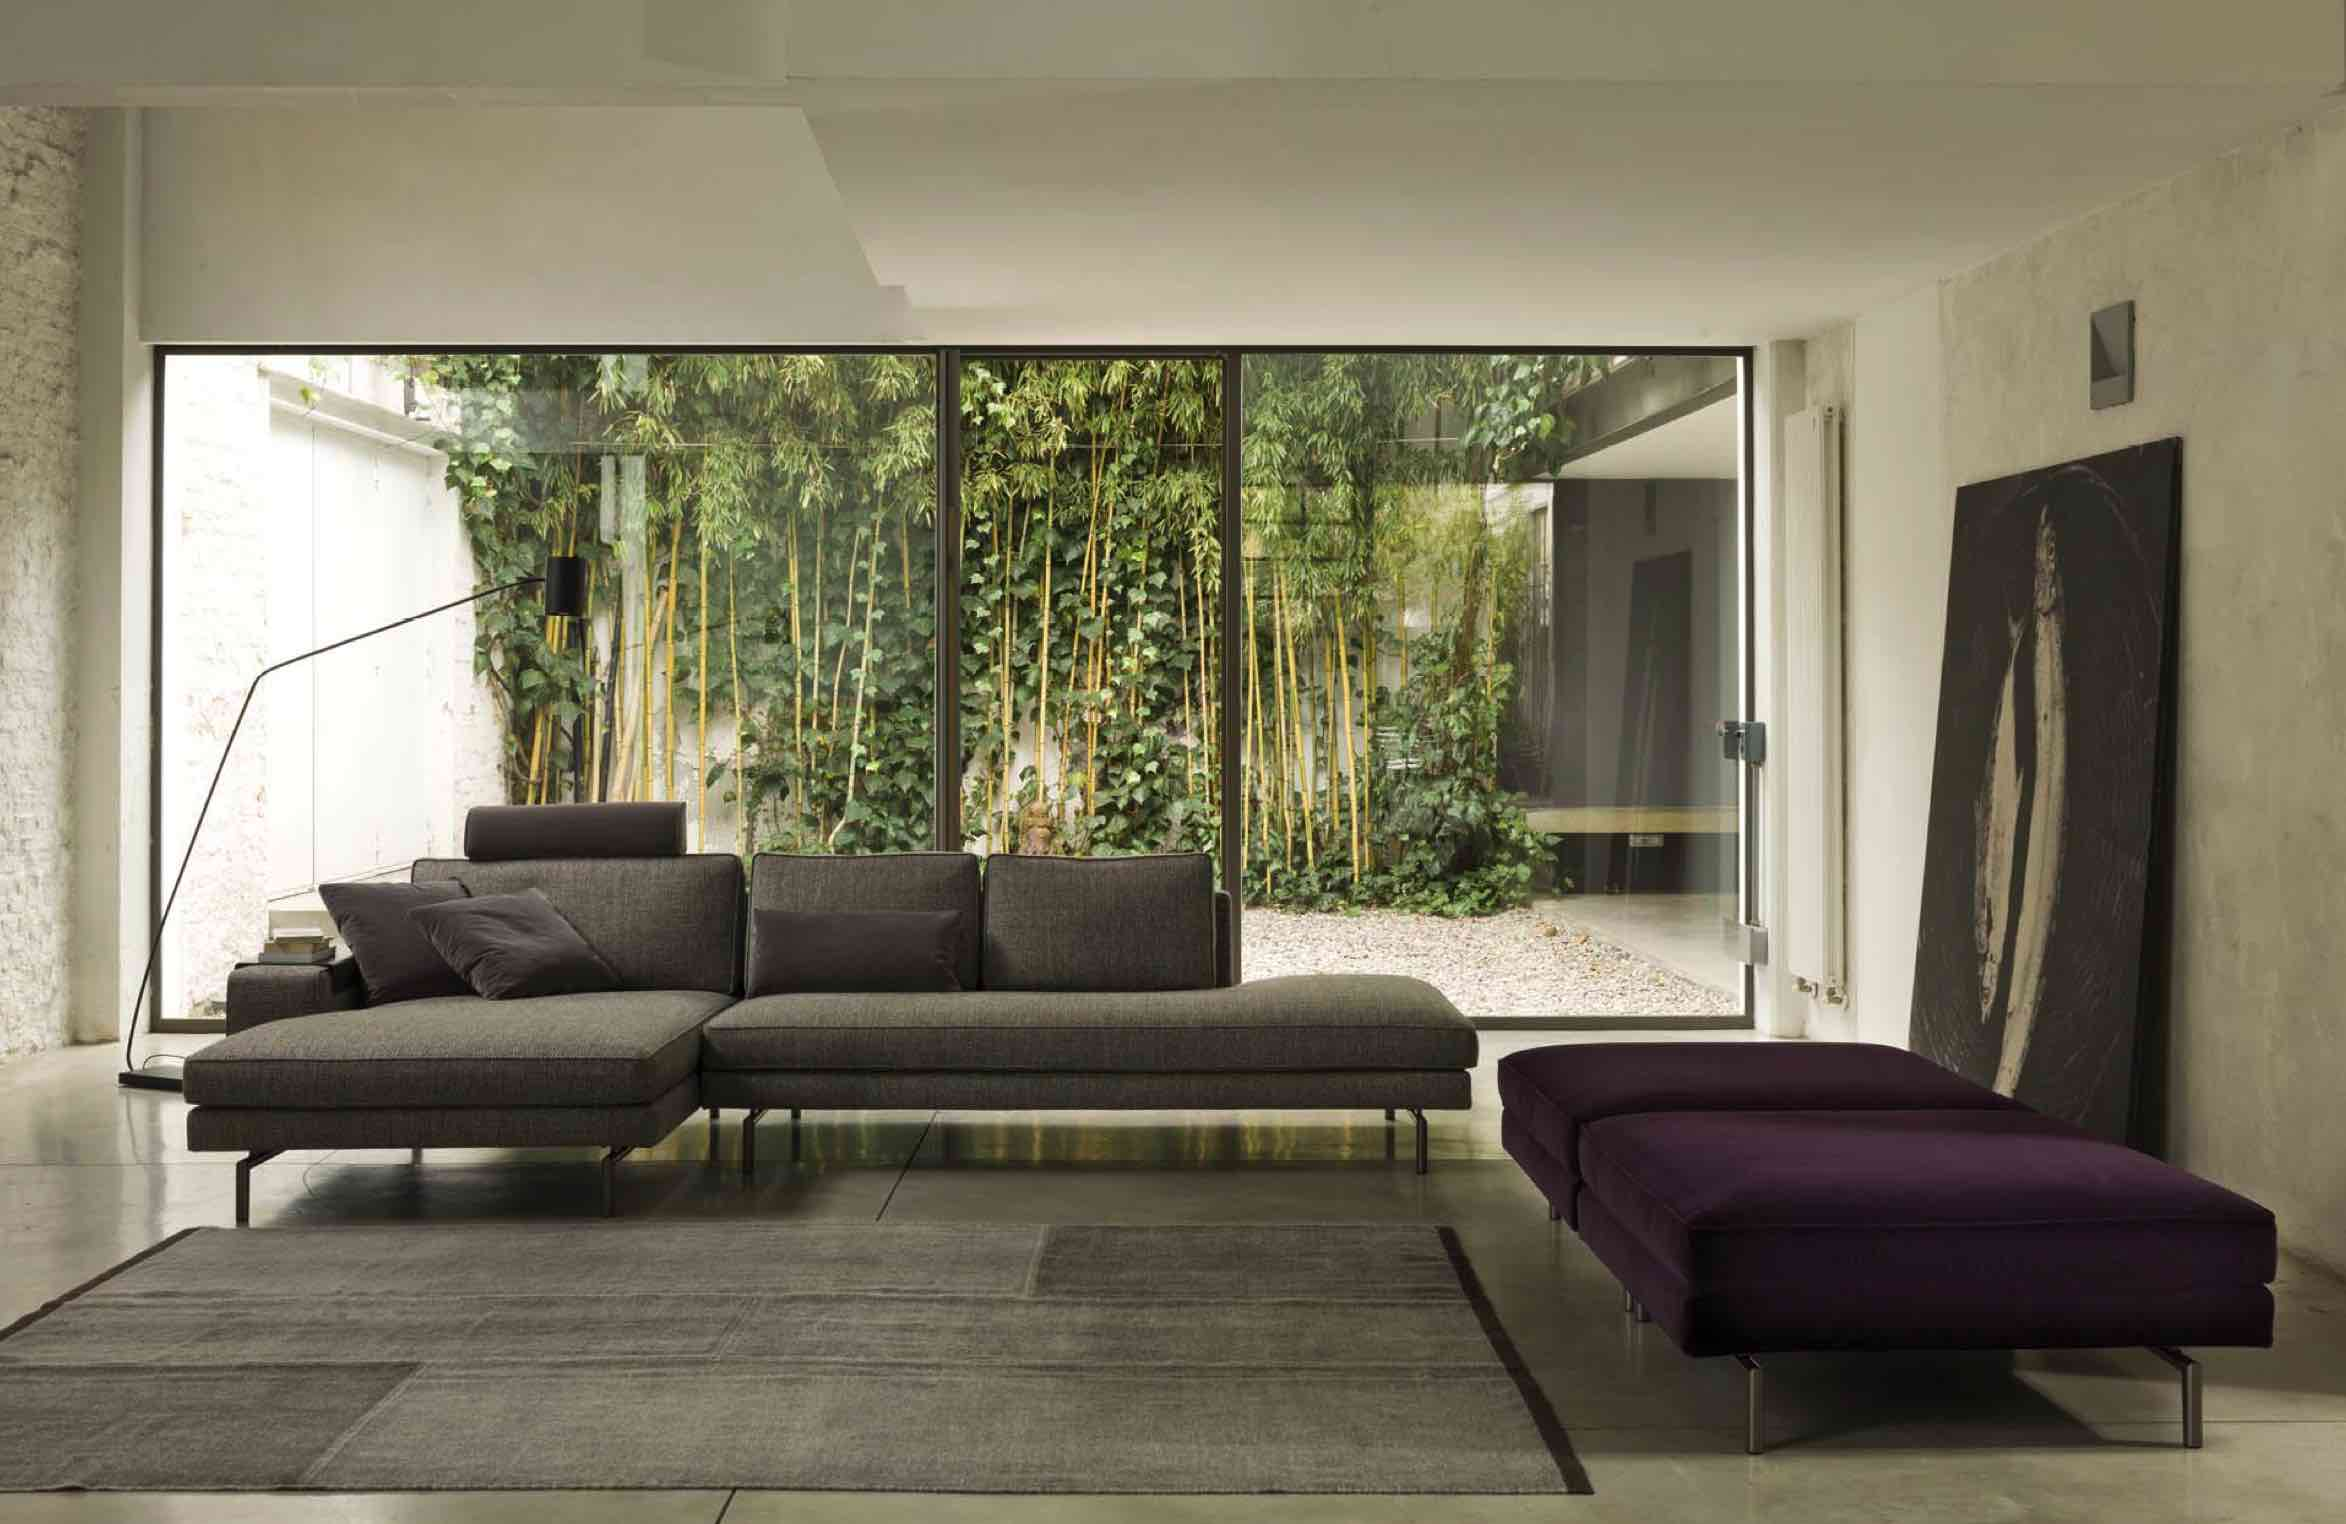 Verzelloni Irving sofa